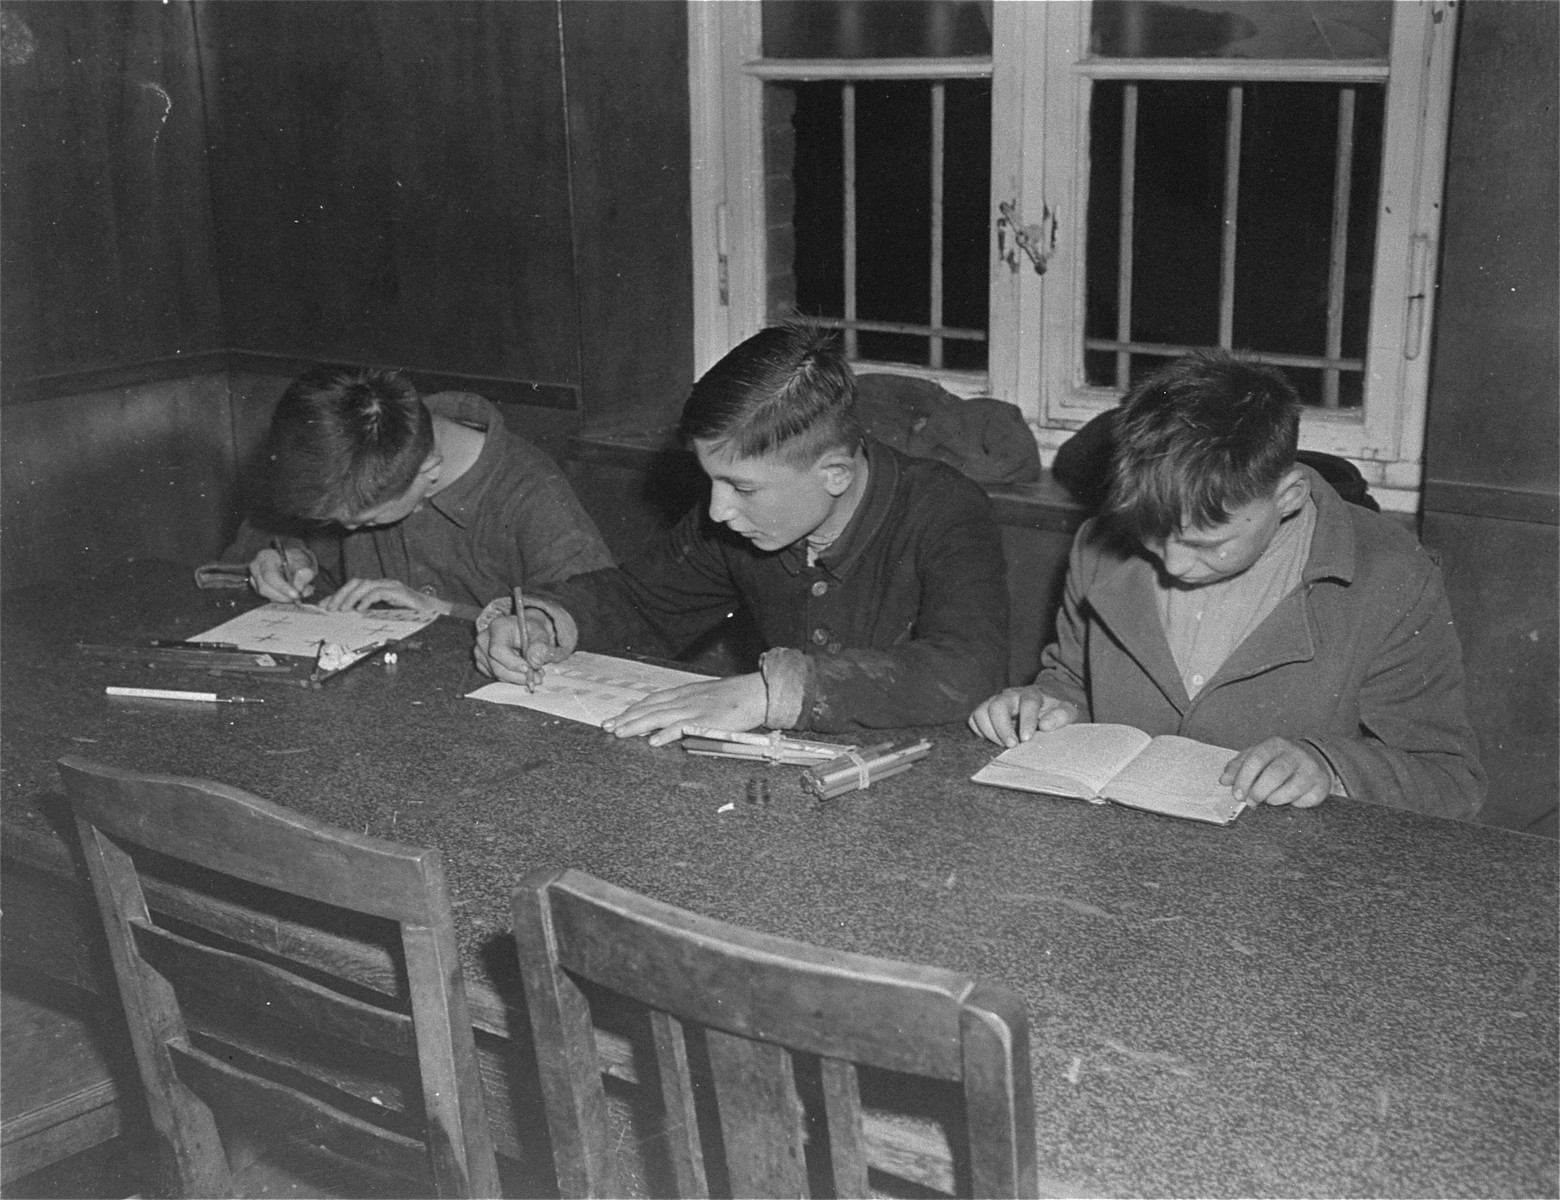 Three young survivors study at a table in the Hadamar Institute.  The photograph was taken by an American military photographer soon after the liberation.